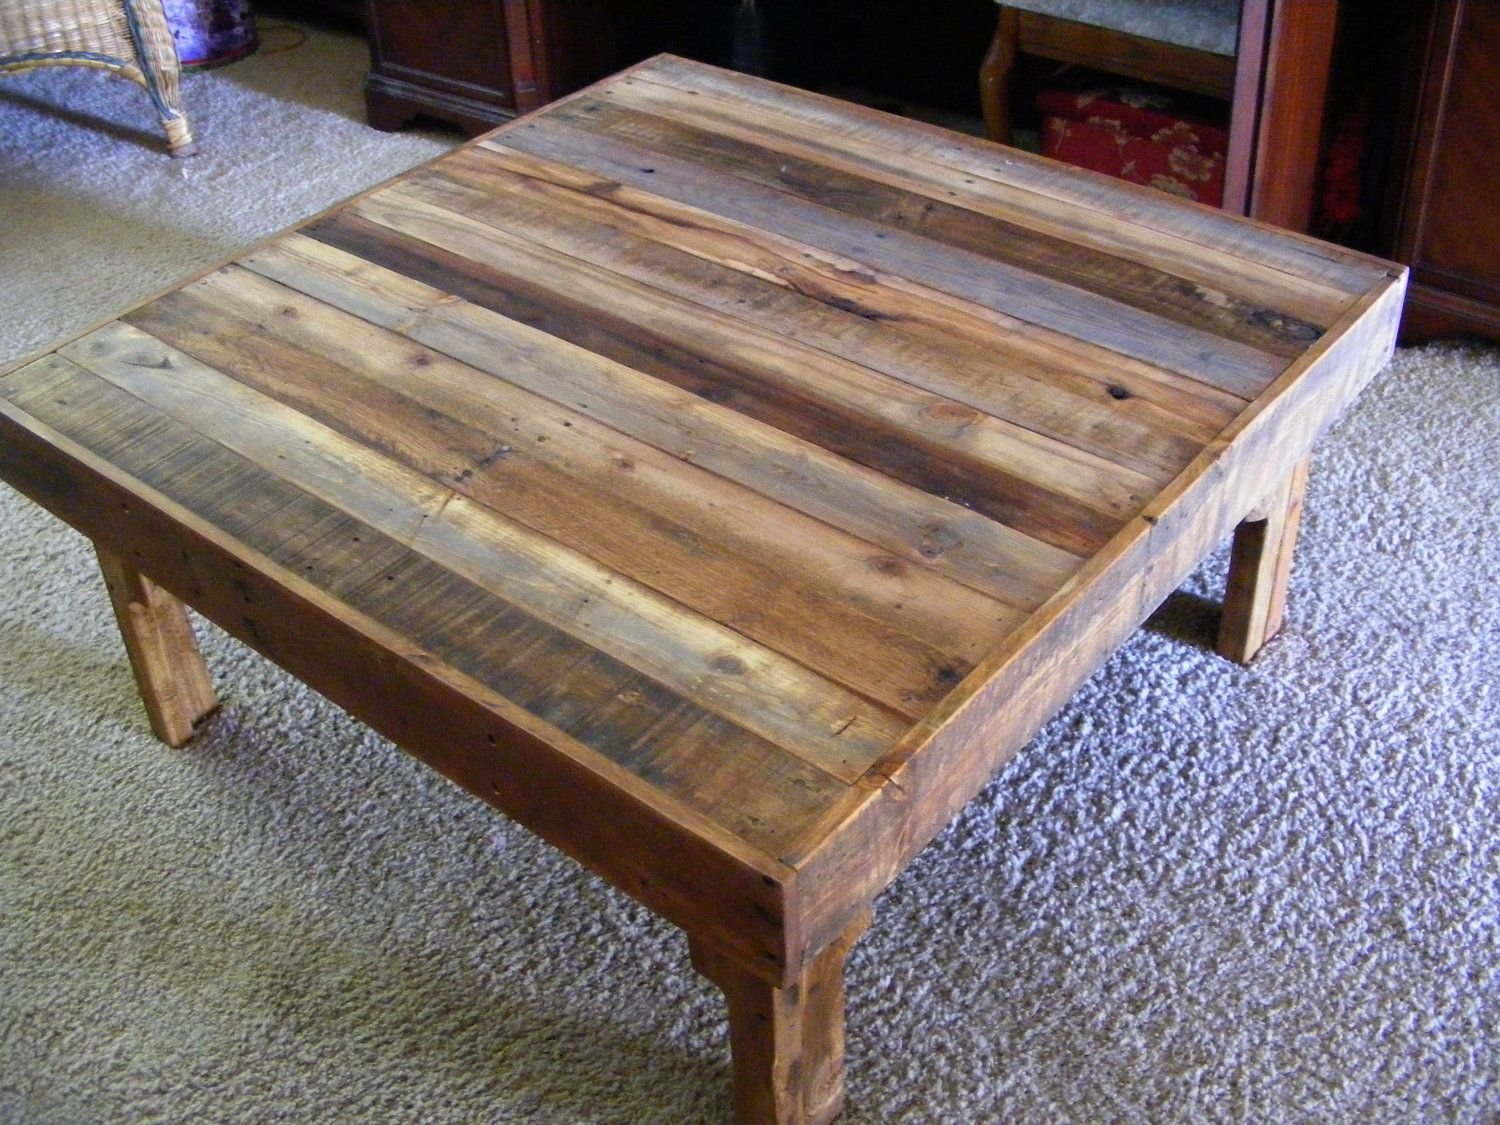 Large Wood Coffee Tables Reserved Order For Megan Large Square Rustic Reclaimed Wood